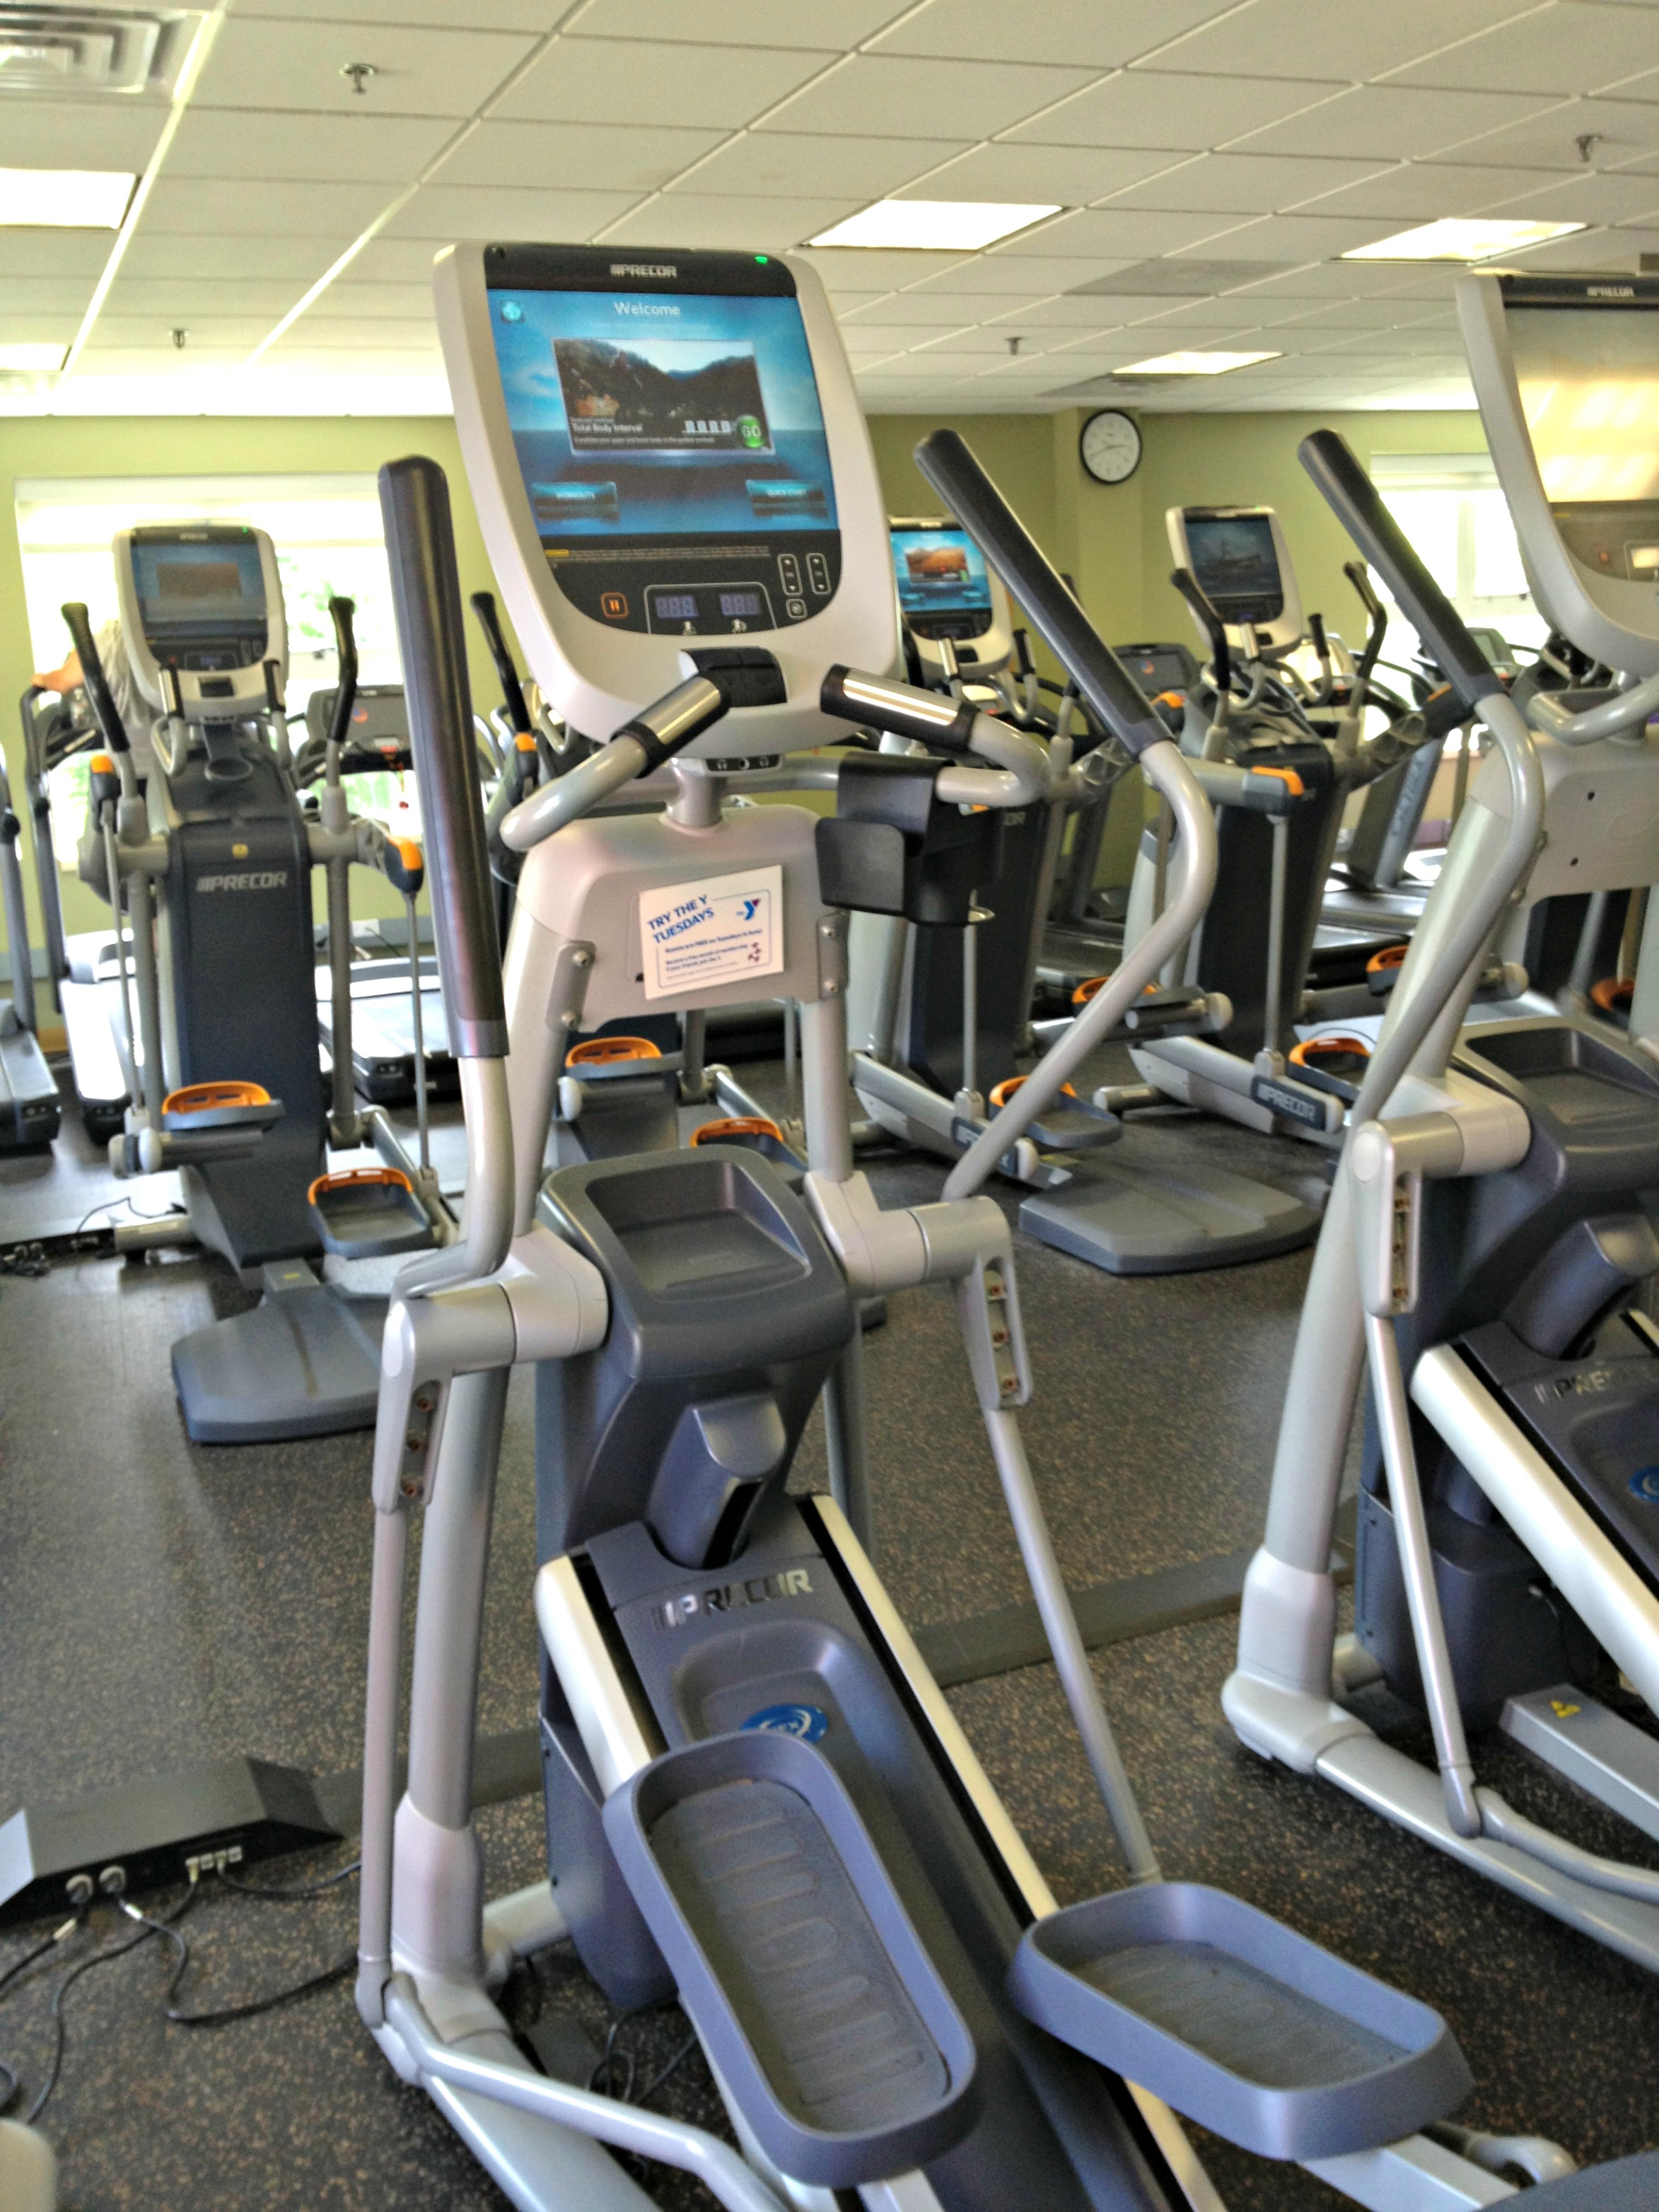 Five Myths About Cardio Exercise